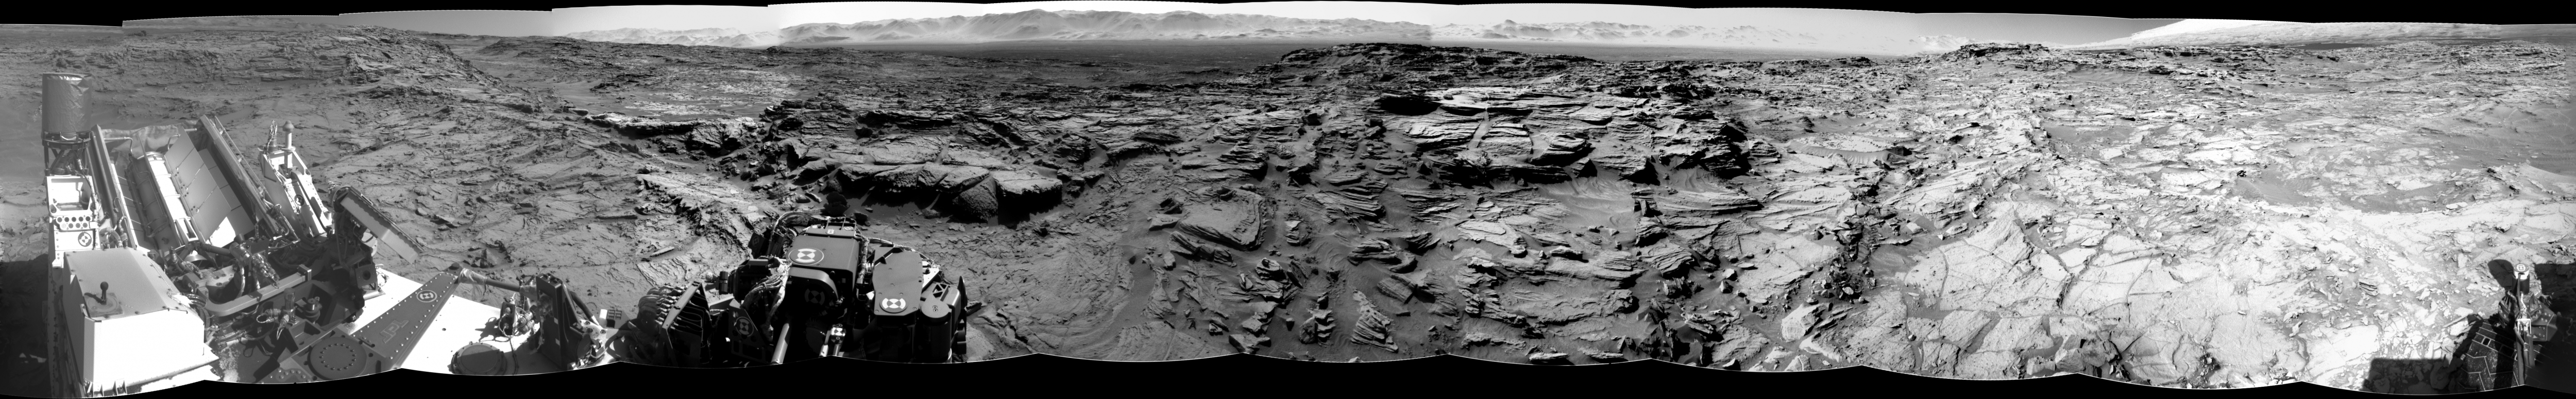 Curiosity Rover Panoramic View of Mars Sol 1301 B&W – Click to enlarge